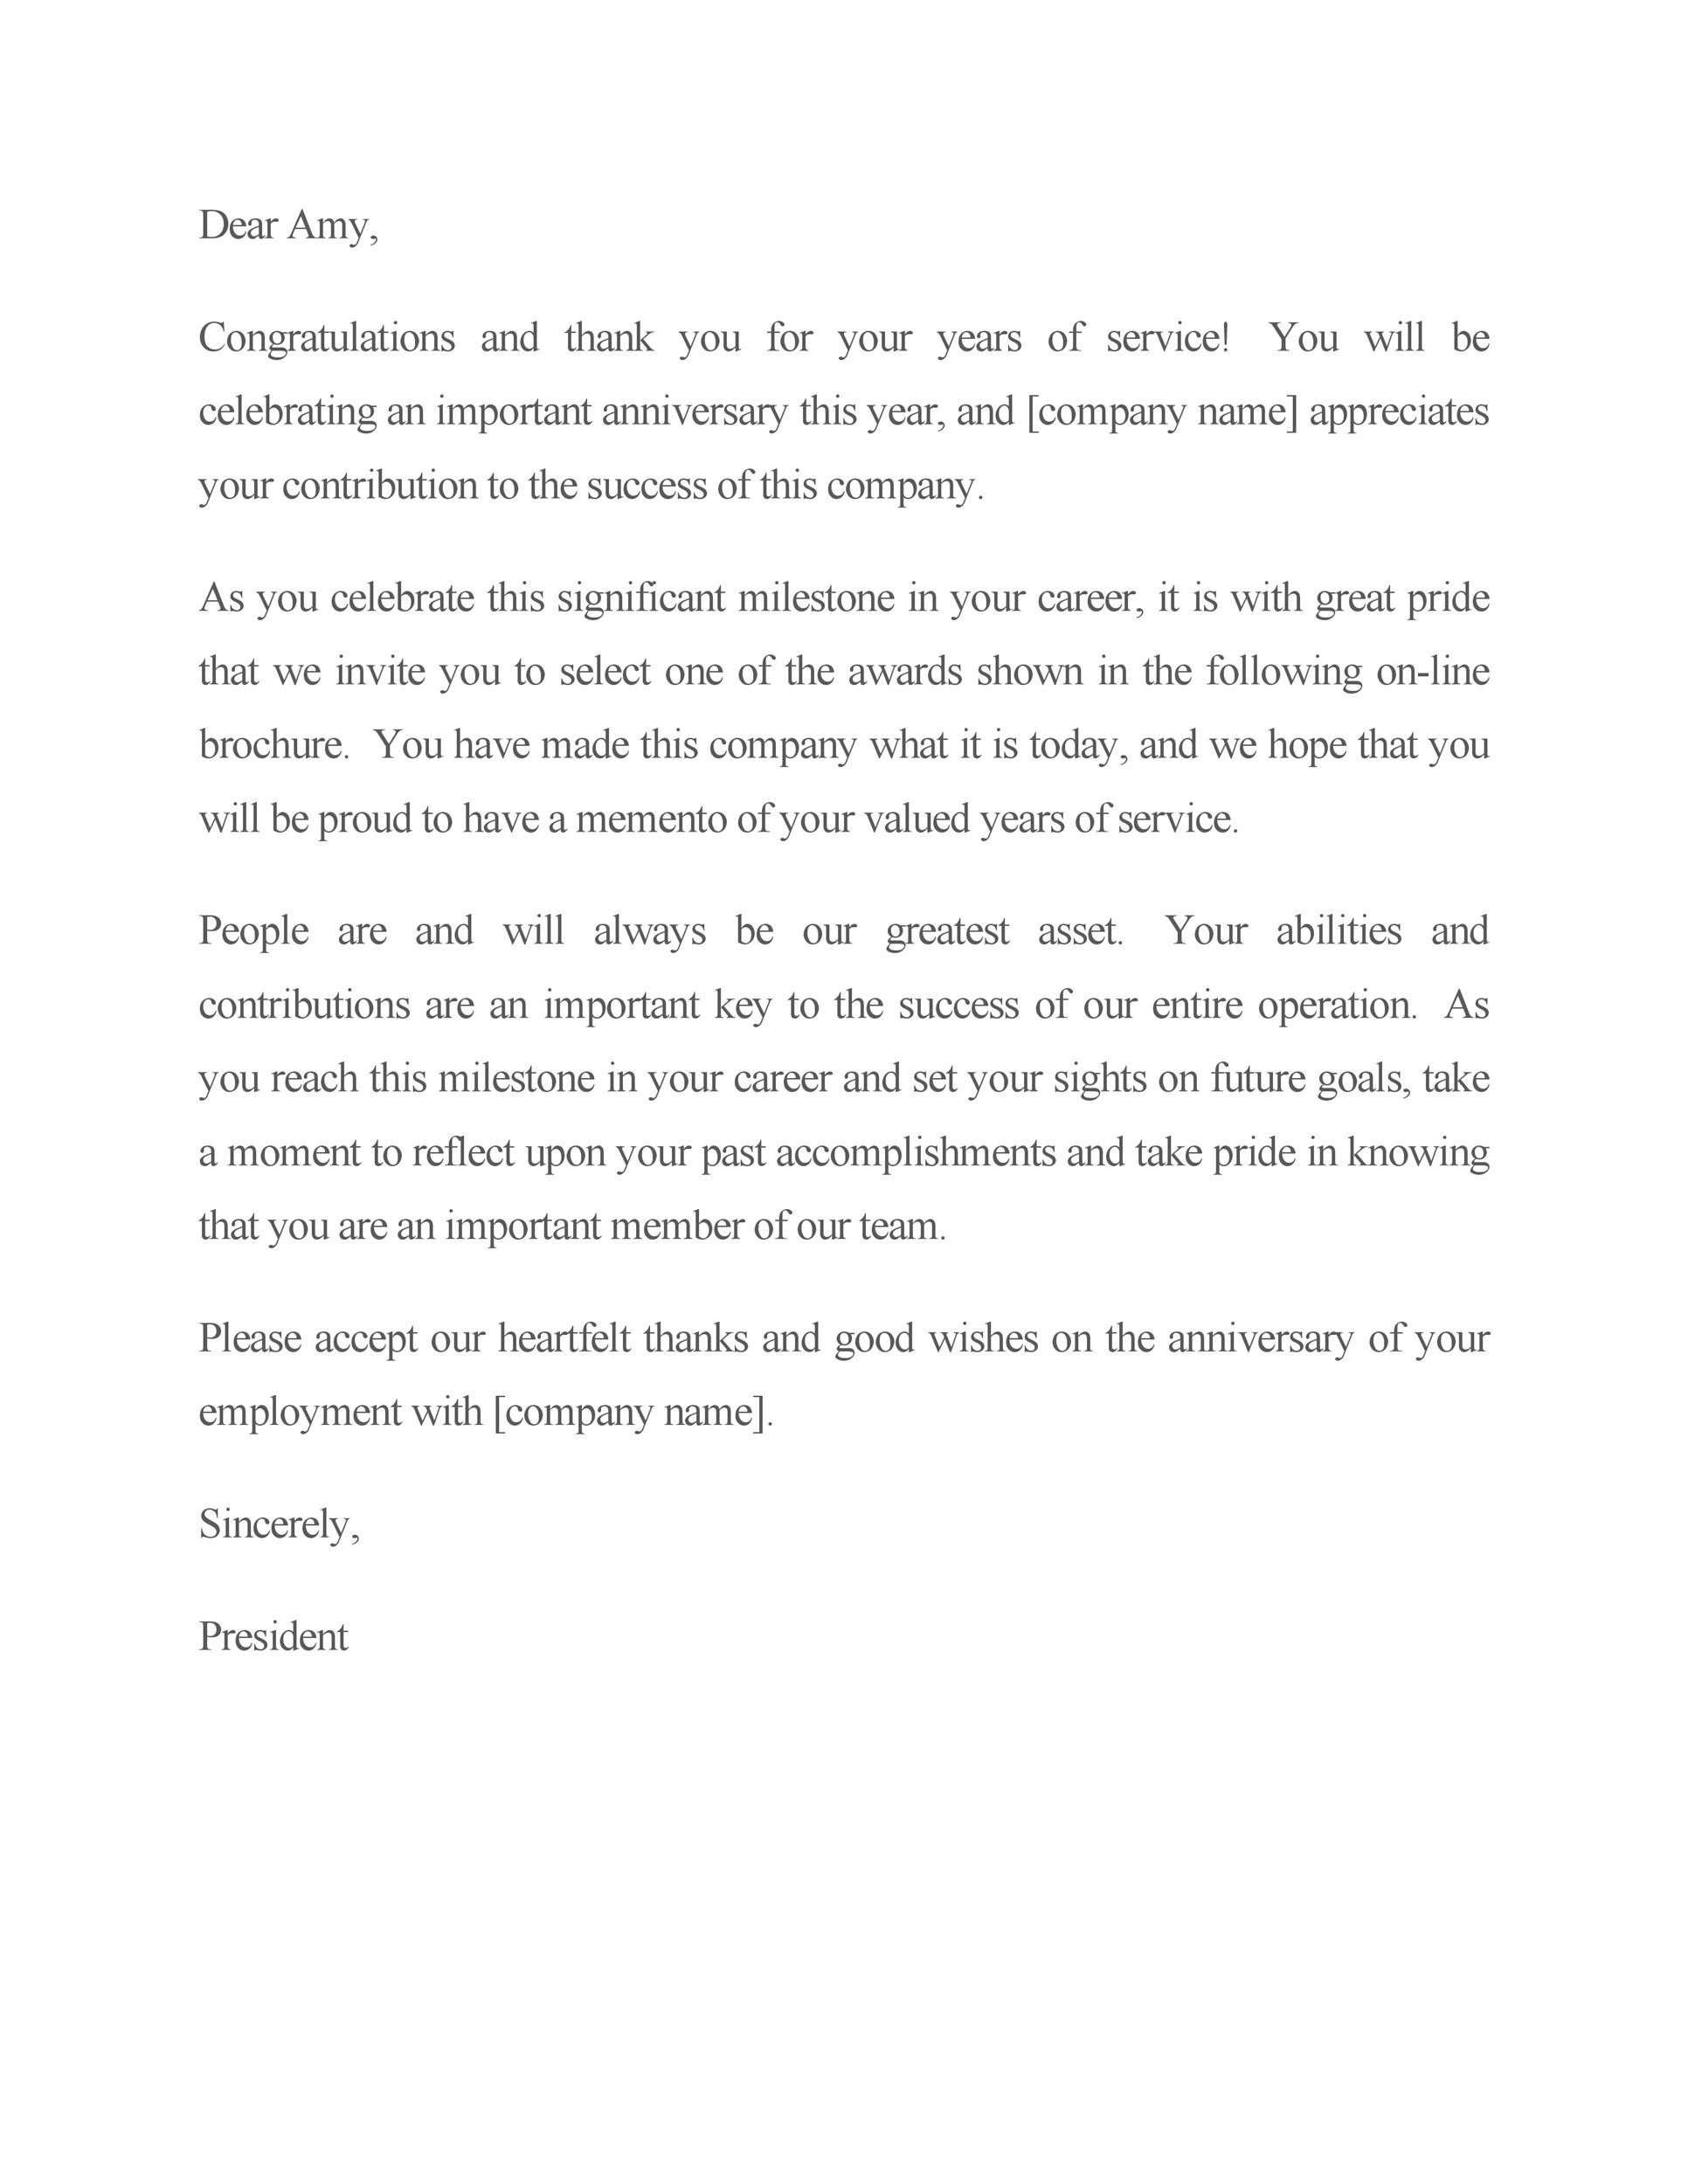 Free recognition letter 21